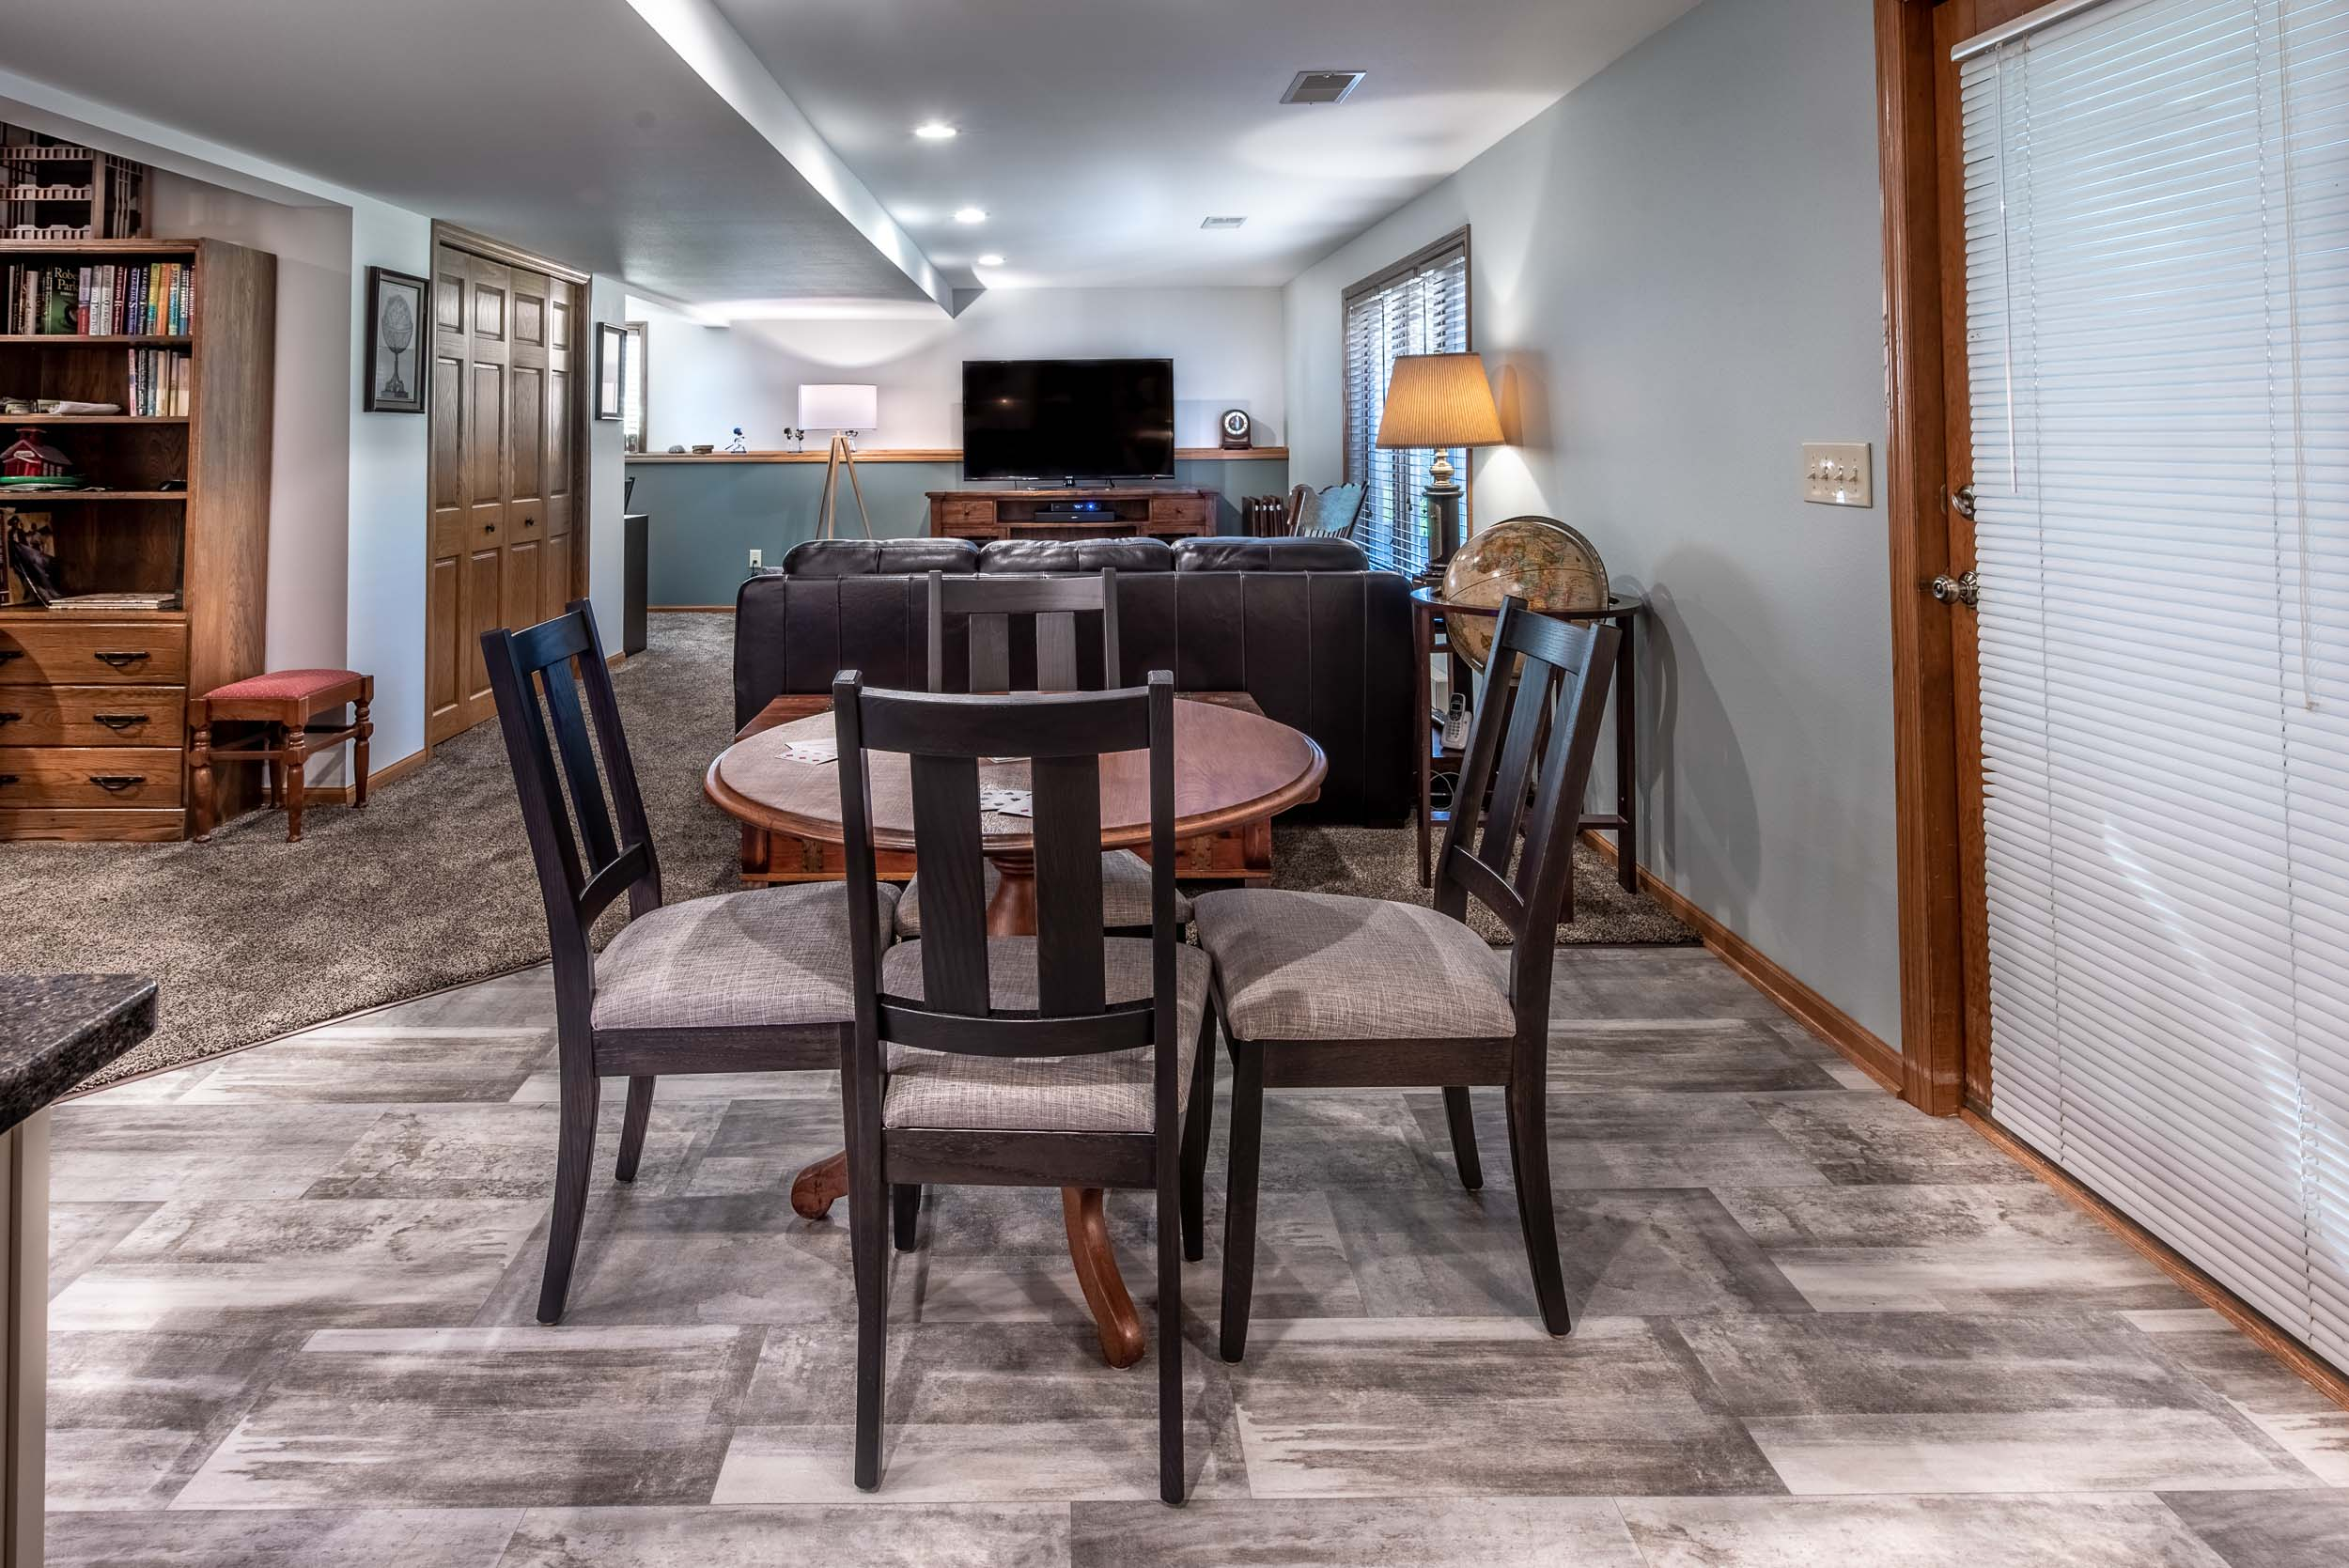 Flooring In The Basement Bar Area Is Platinum Luxury Vinyl In The Color, Patina Carbon.